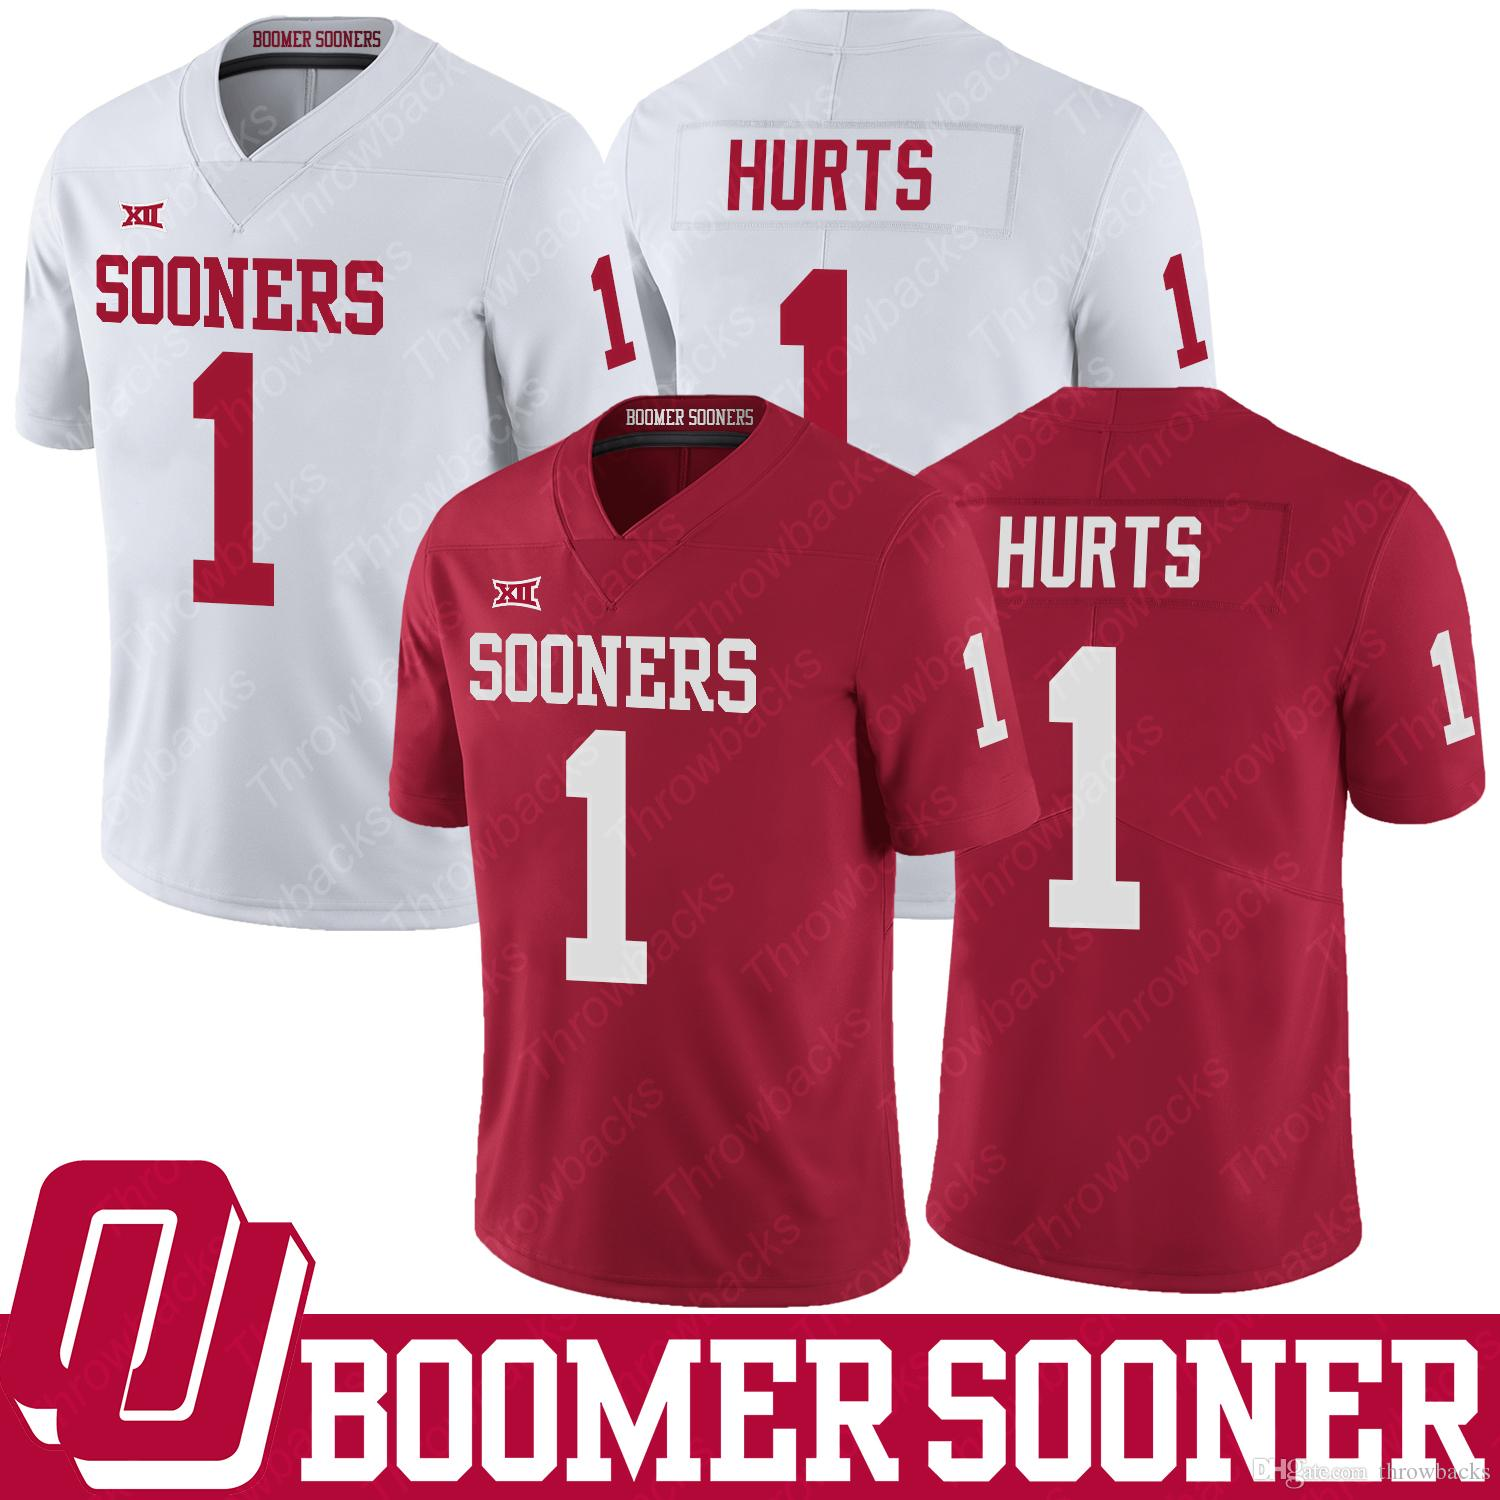 9878797eb57 2019 1 Jalen Hurts Oklahoma Sooners Jersey NCAA College Football Jerseys  Home Away Red White Men Size S XXXL From Throwbacks, $30.46 | DHgate.Com